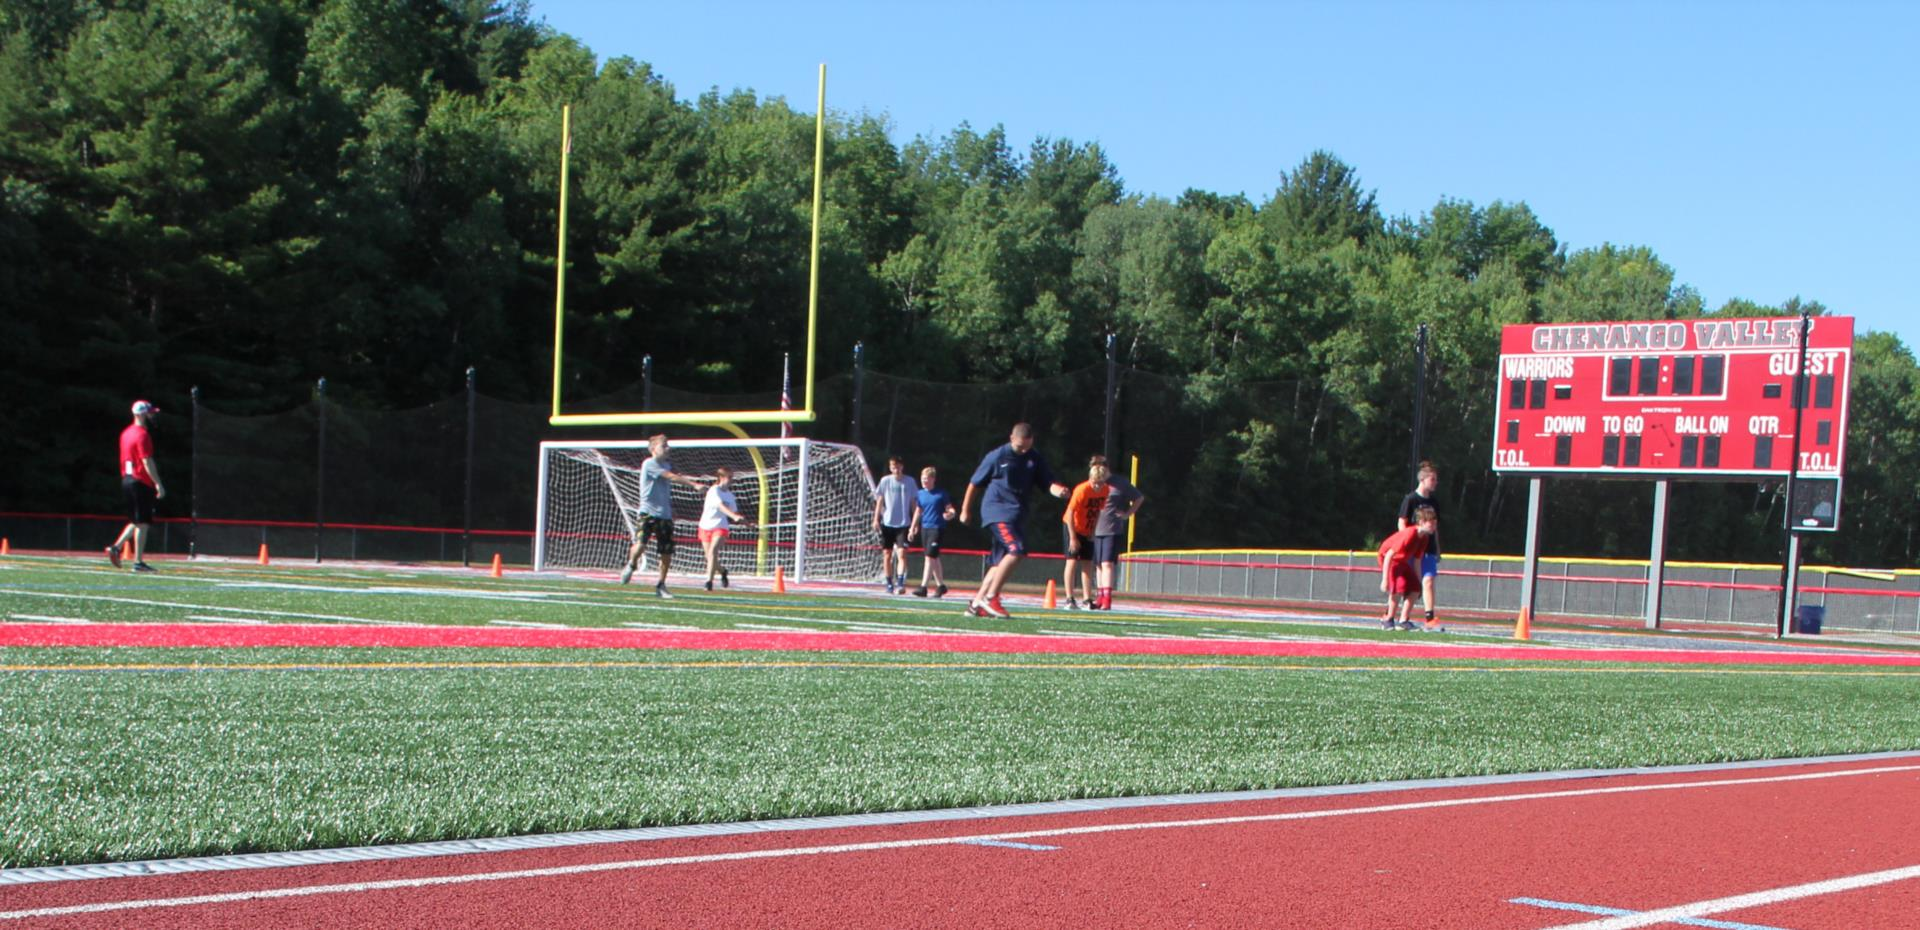 students exercising on turf